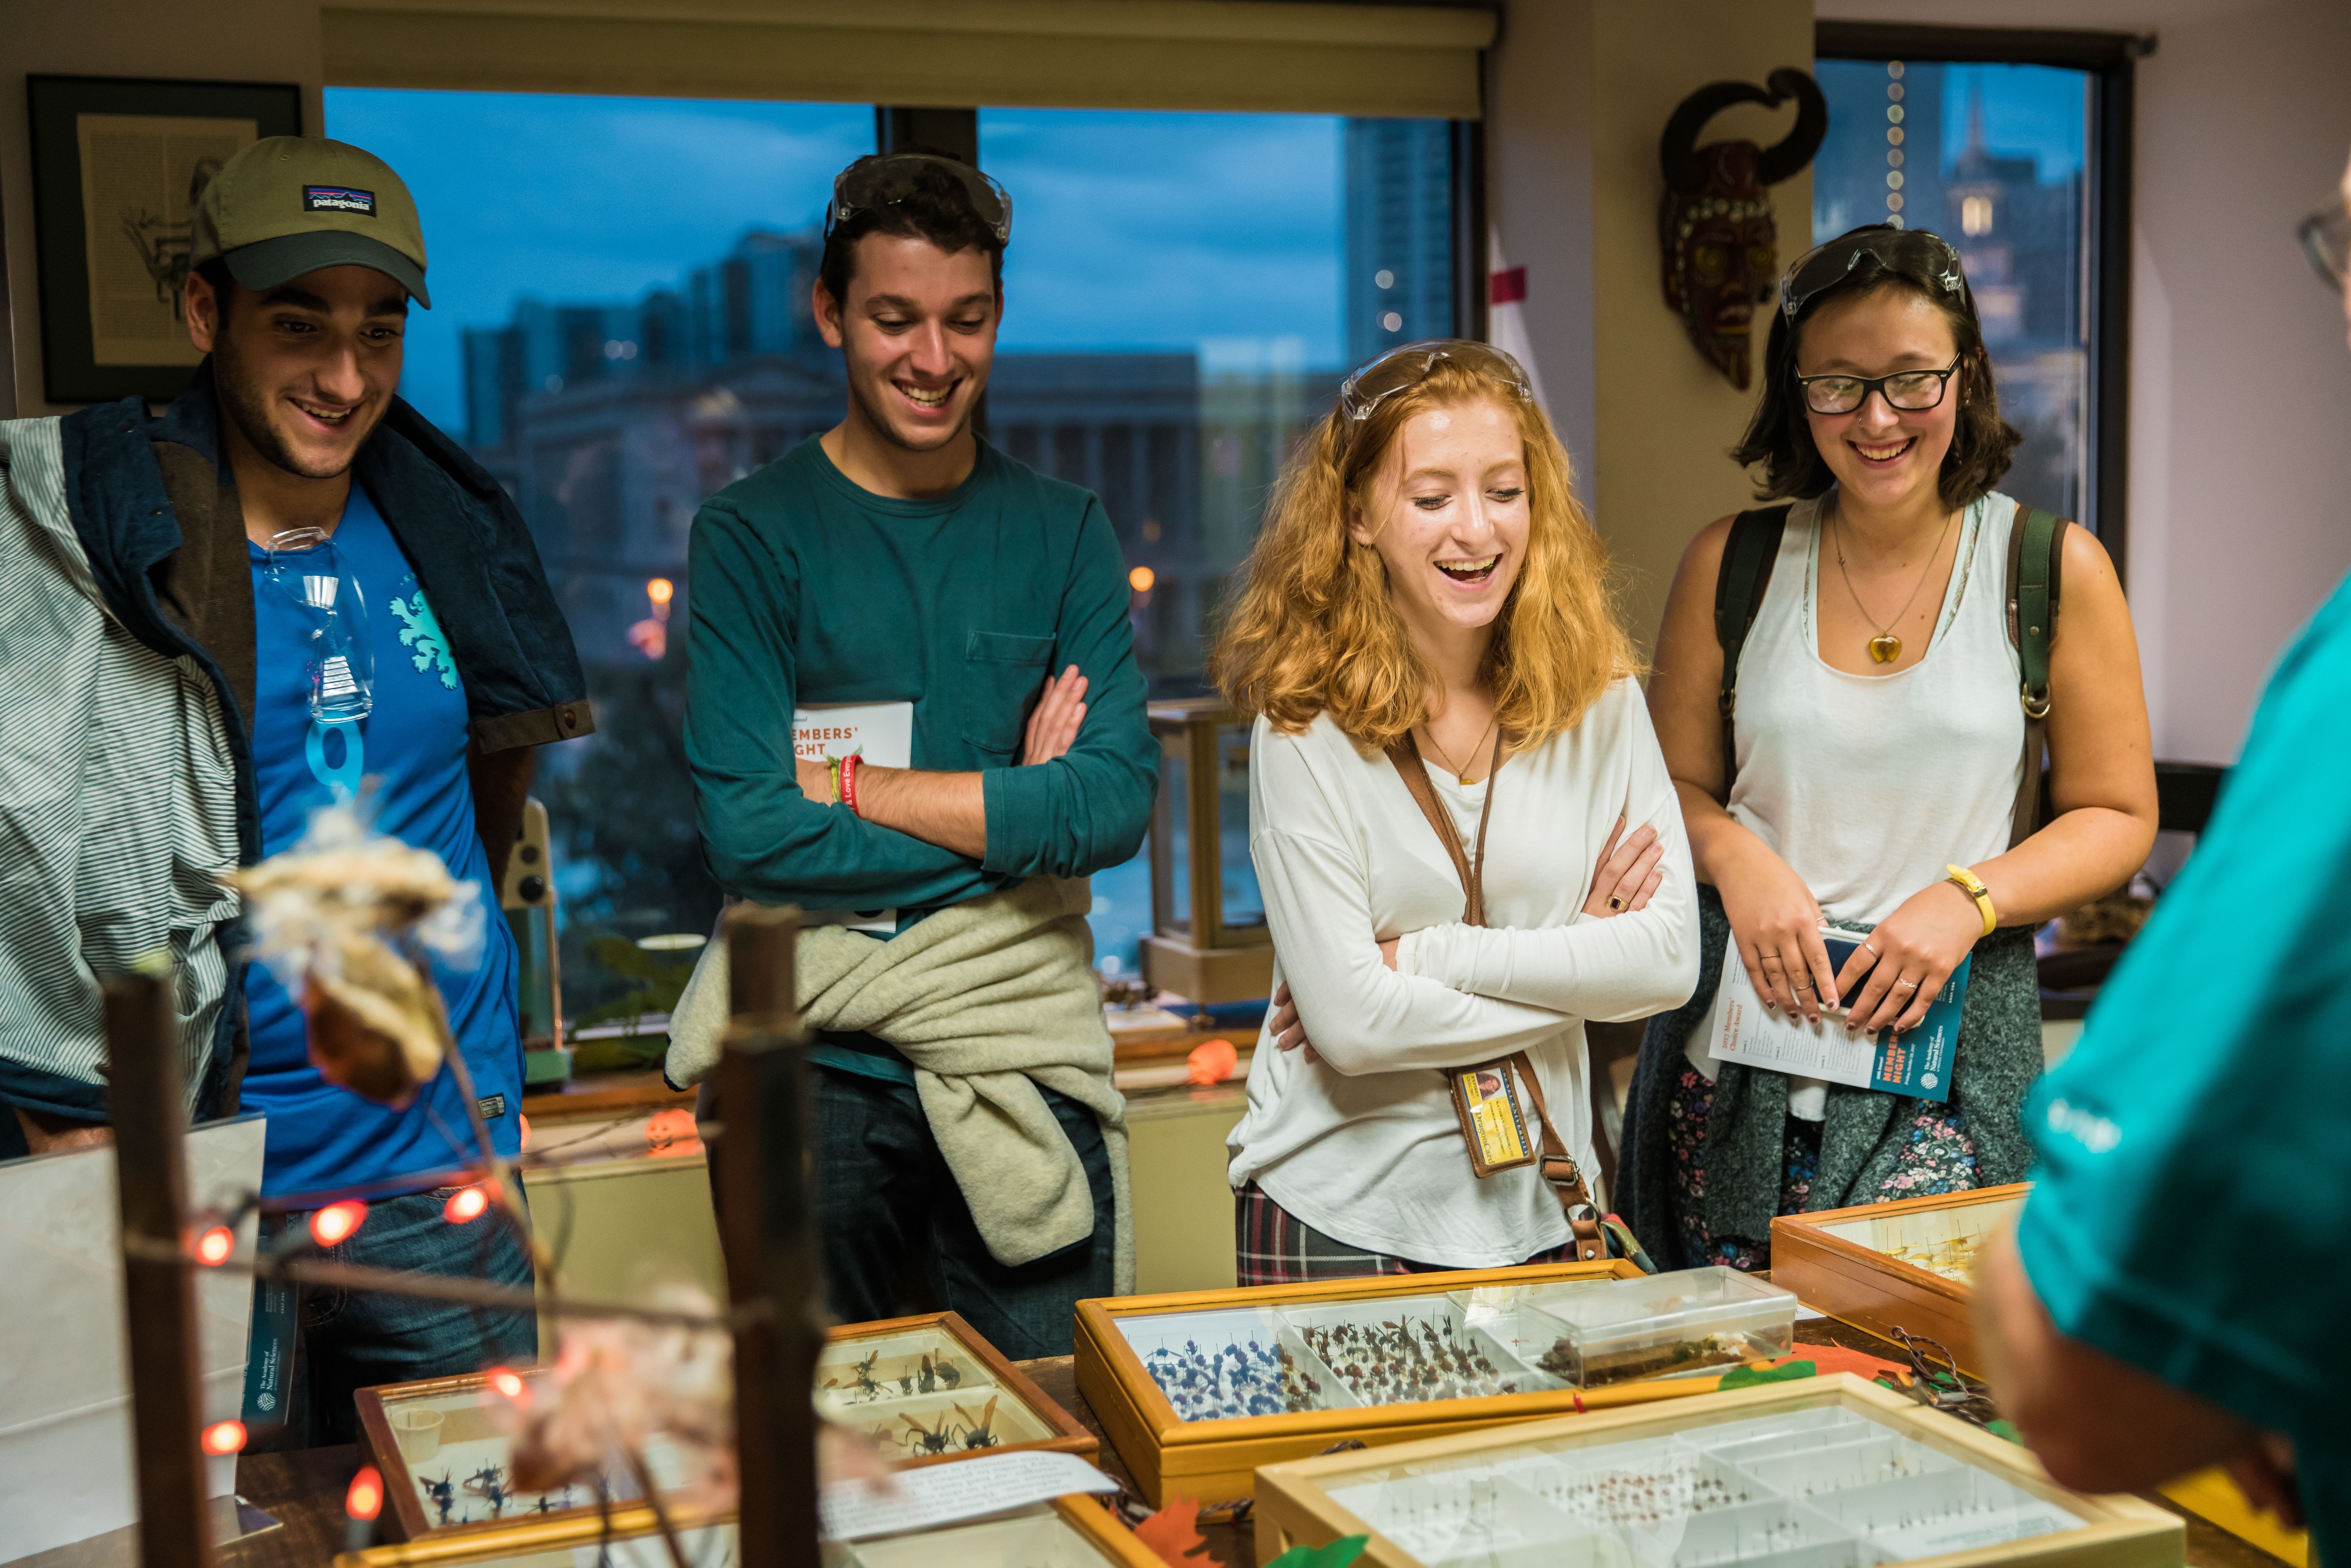 Members learn about insects in the collection